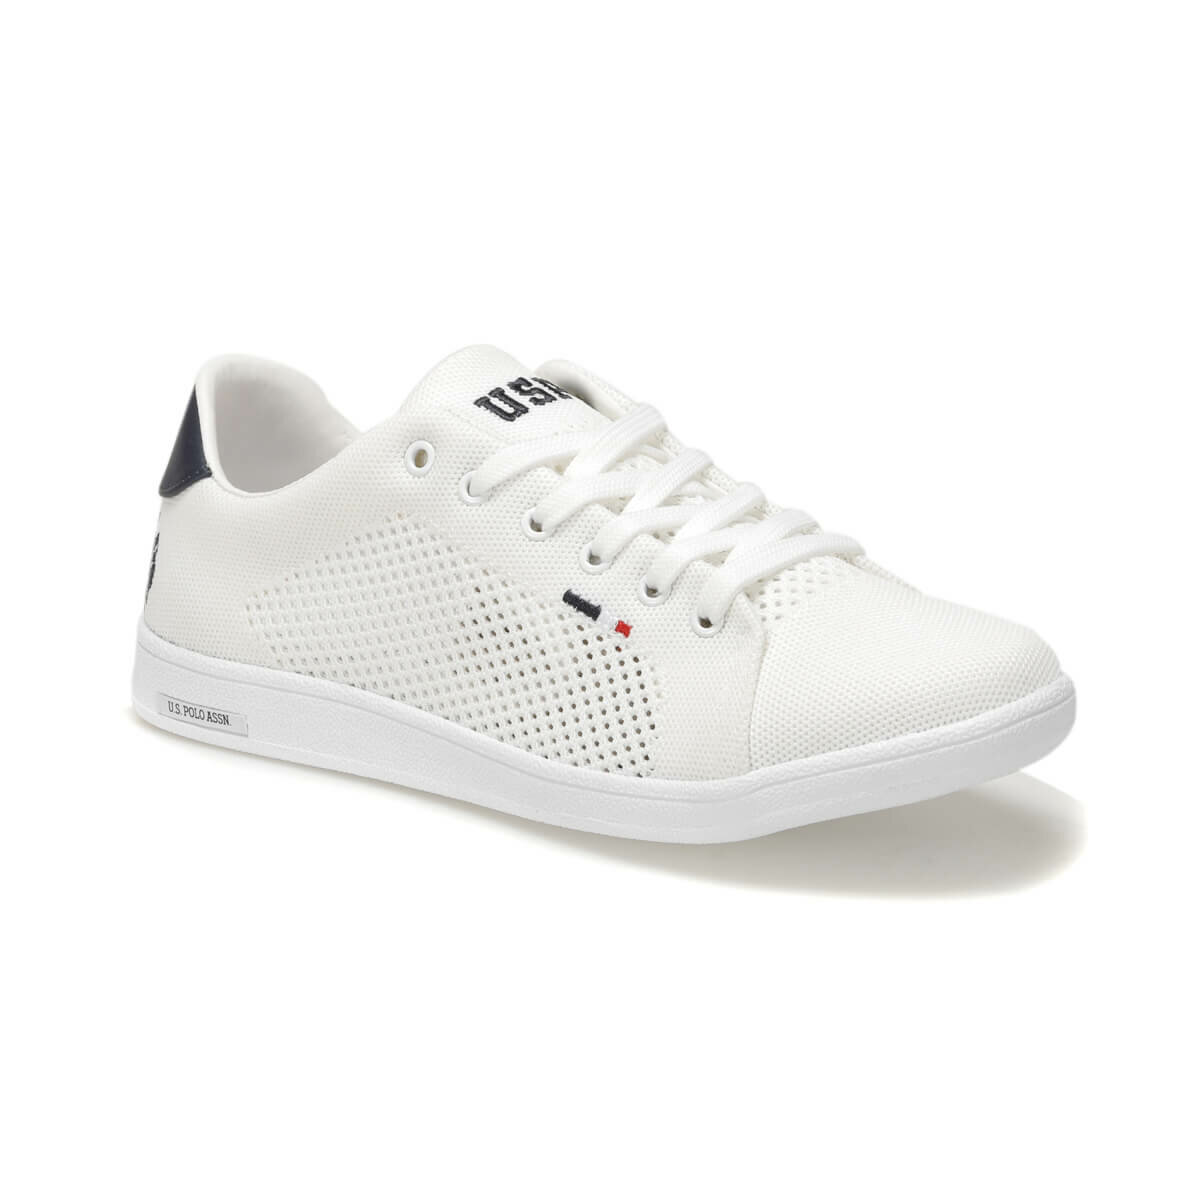 FLO FRANCO KNITTING White Men 'S Sneaker Shoes U.S. POLO ASSN.